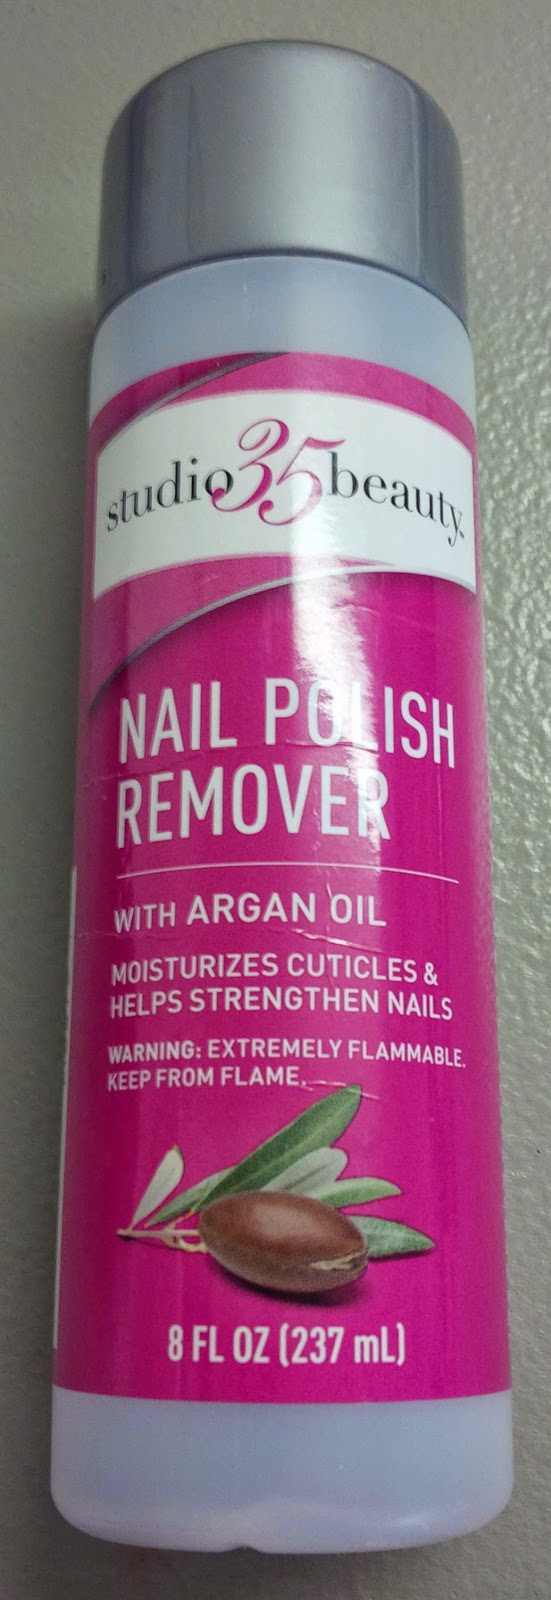 Studio 35 Beauty Argan Oil Nail Polish Remover Reviews